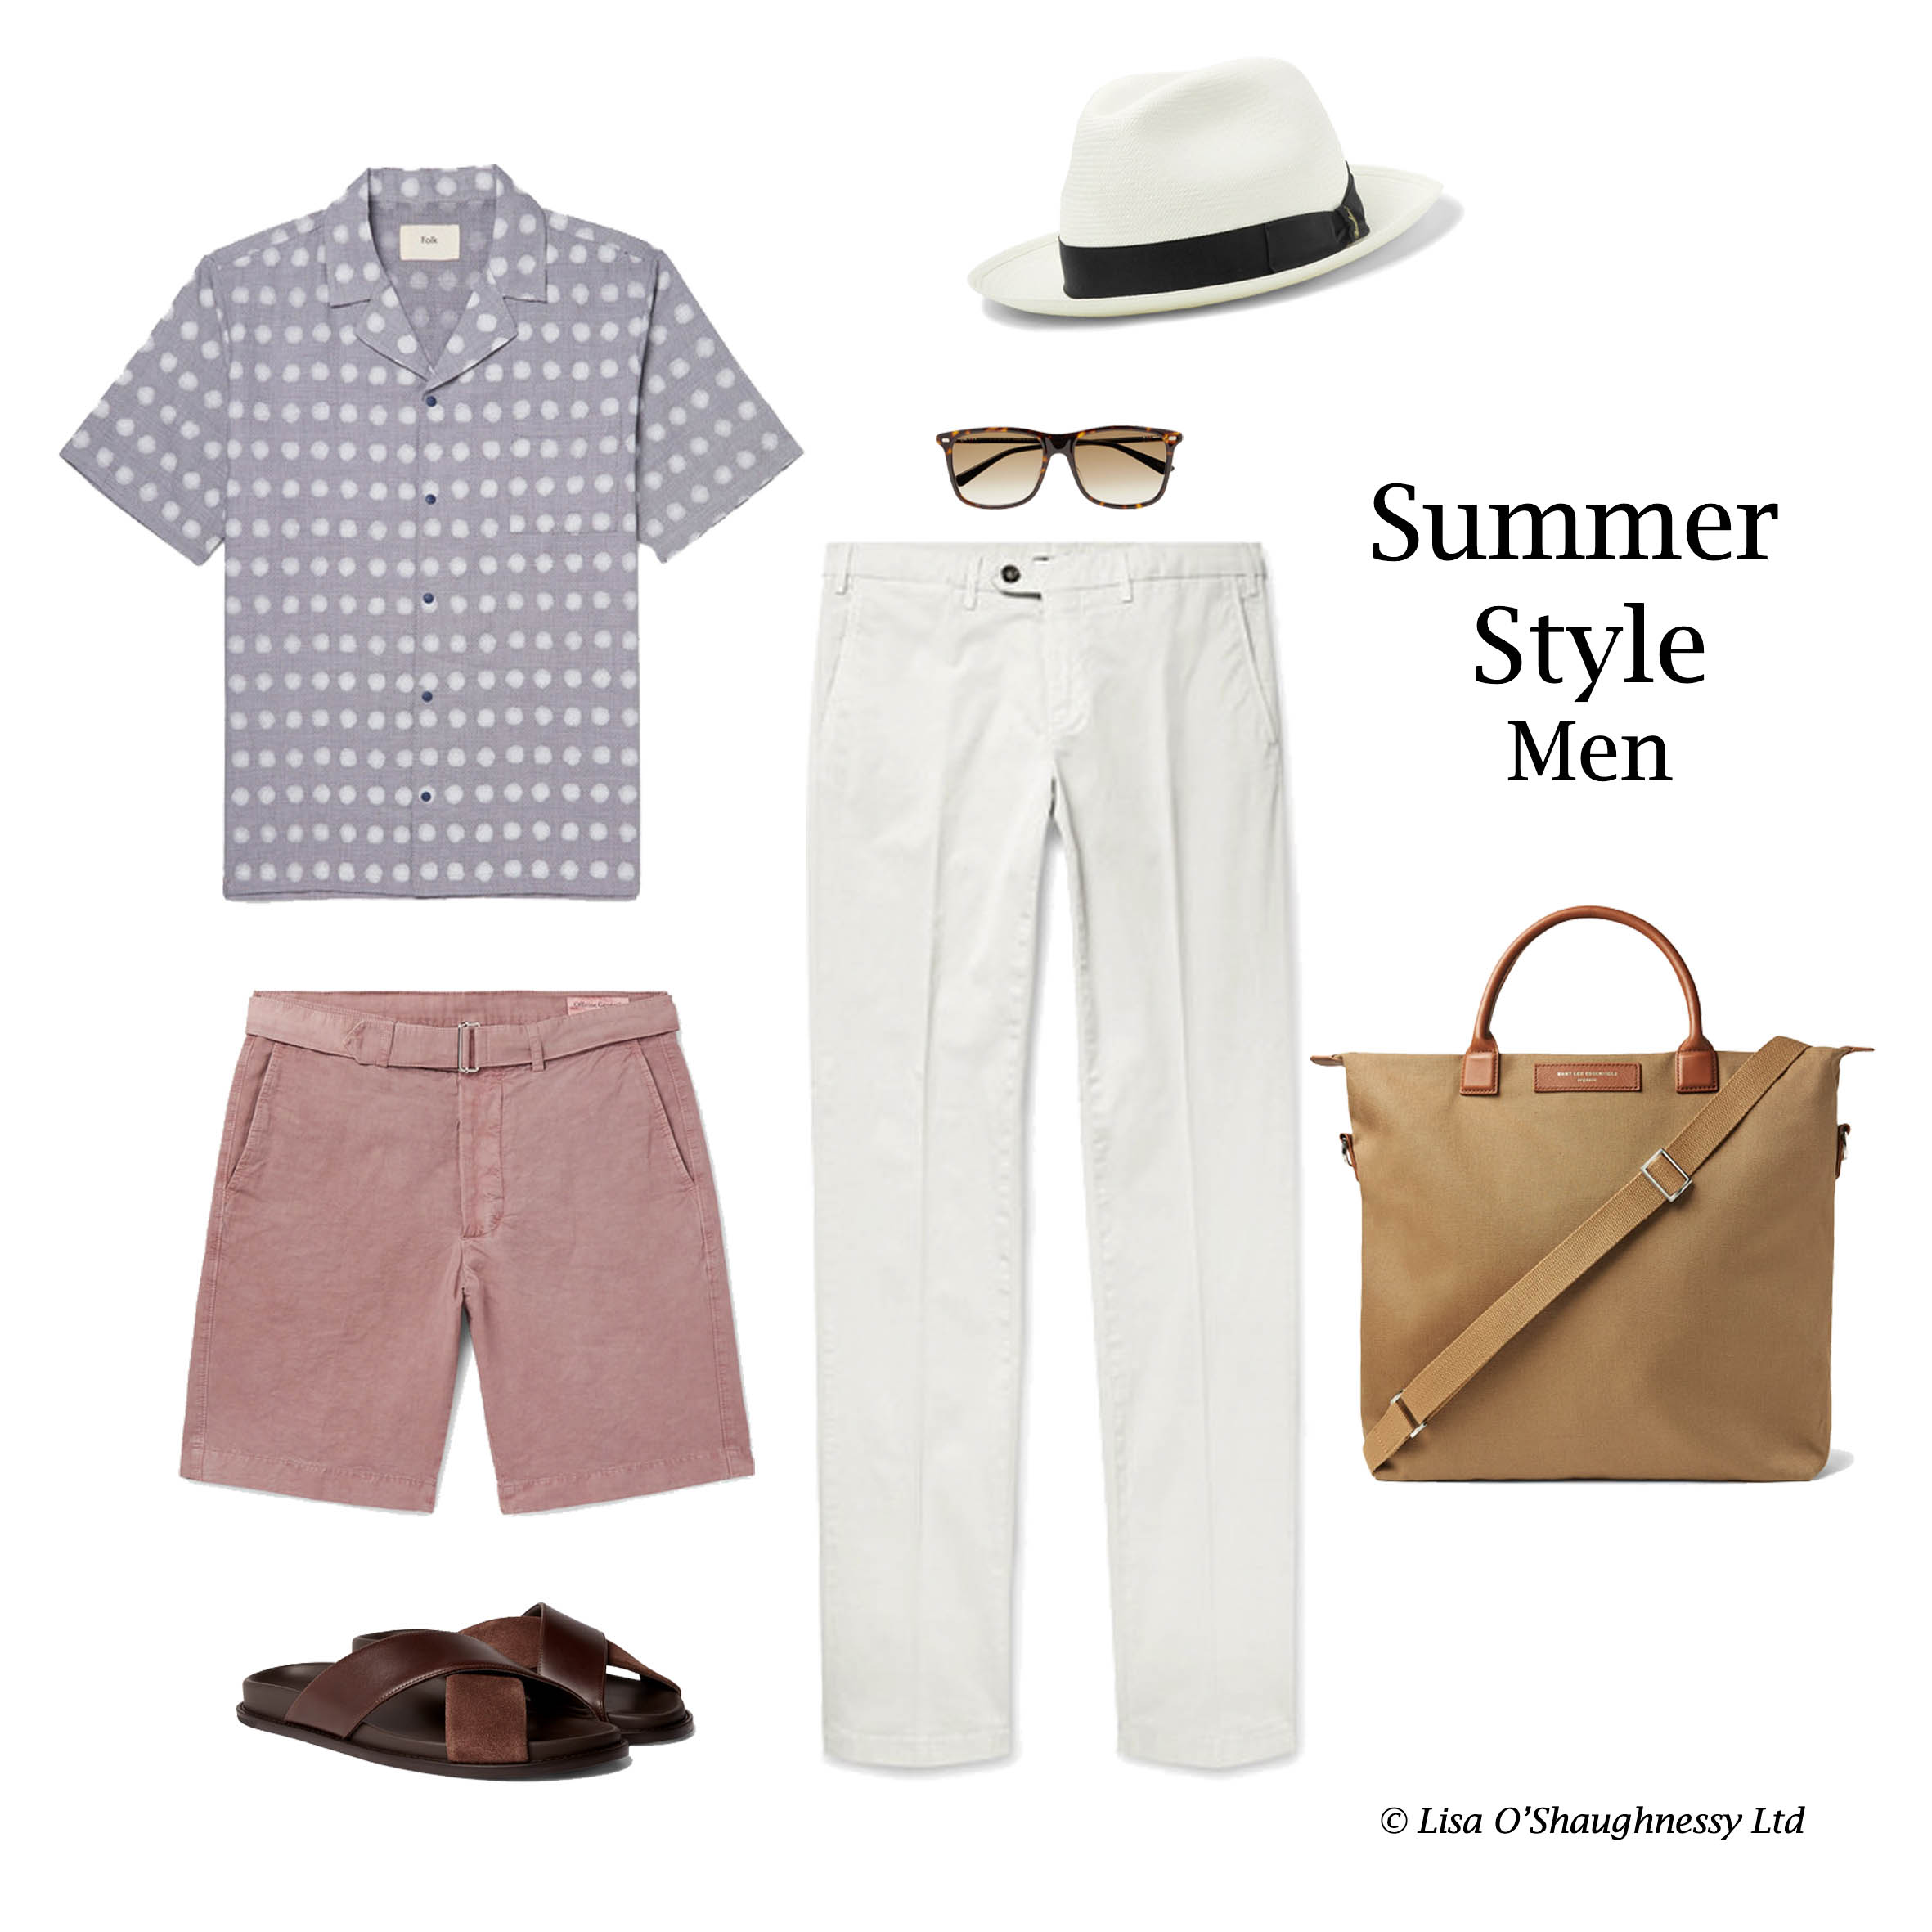 Personal Shopping vacation outfit for men.